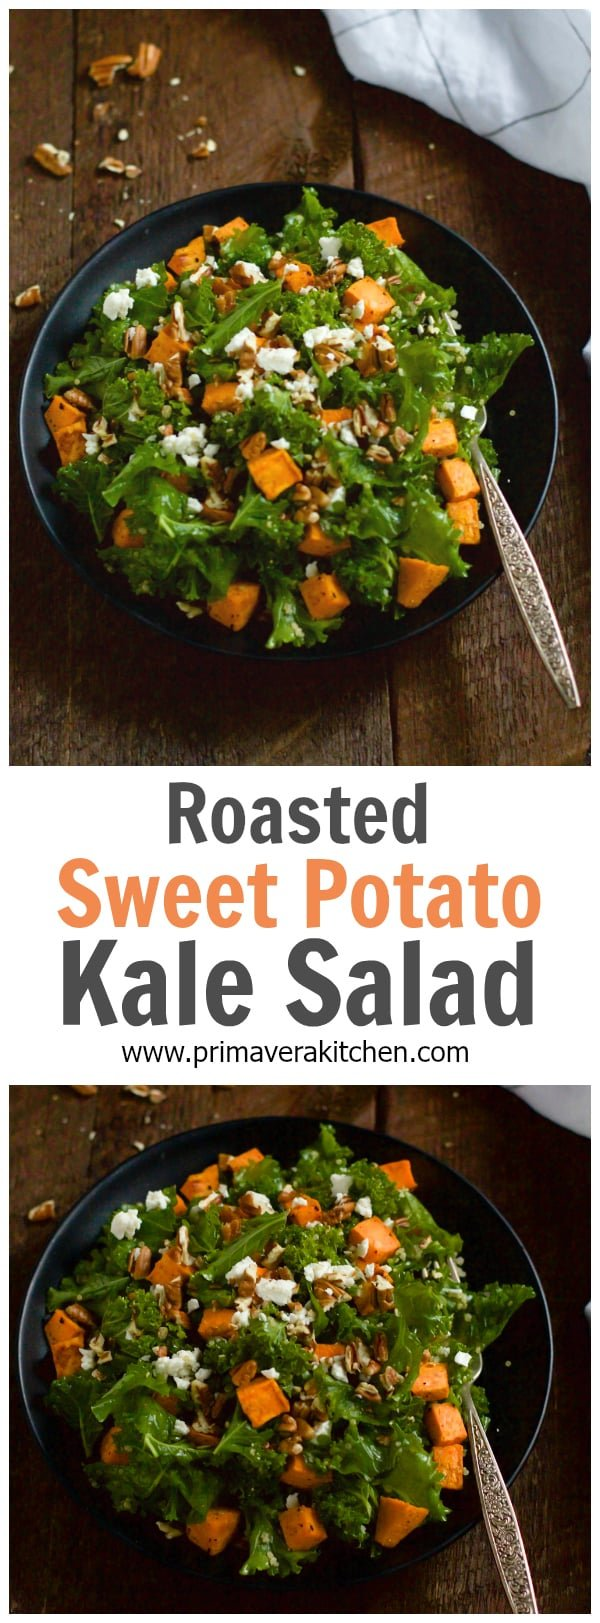 Roasted Sweet Potato Kale Salad - This hearty Roasted Sweet Potato Kale Salad is made with massaged kale, roasted sweet potatoes, pecans and crumbled Feta cheese.